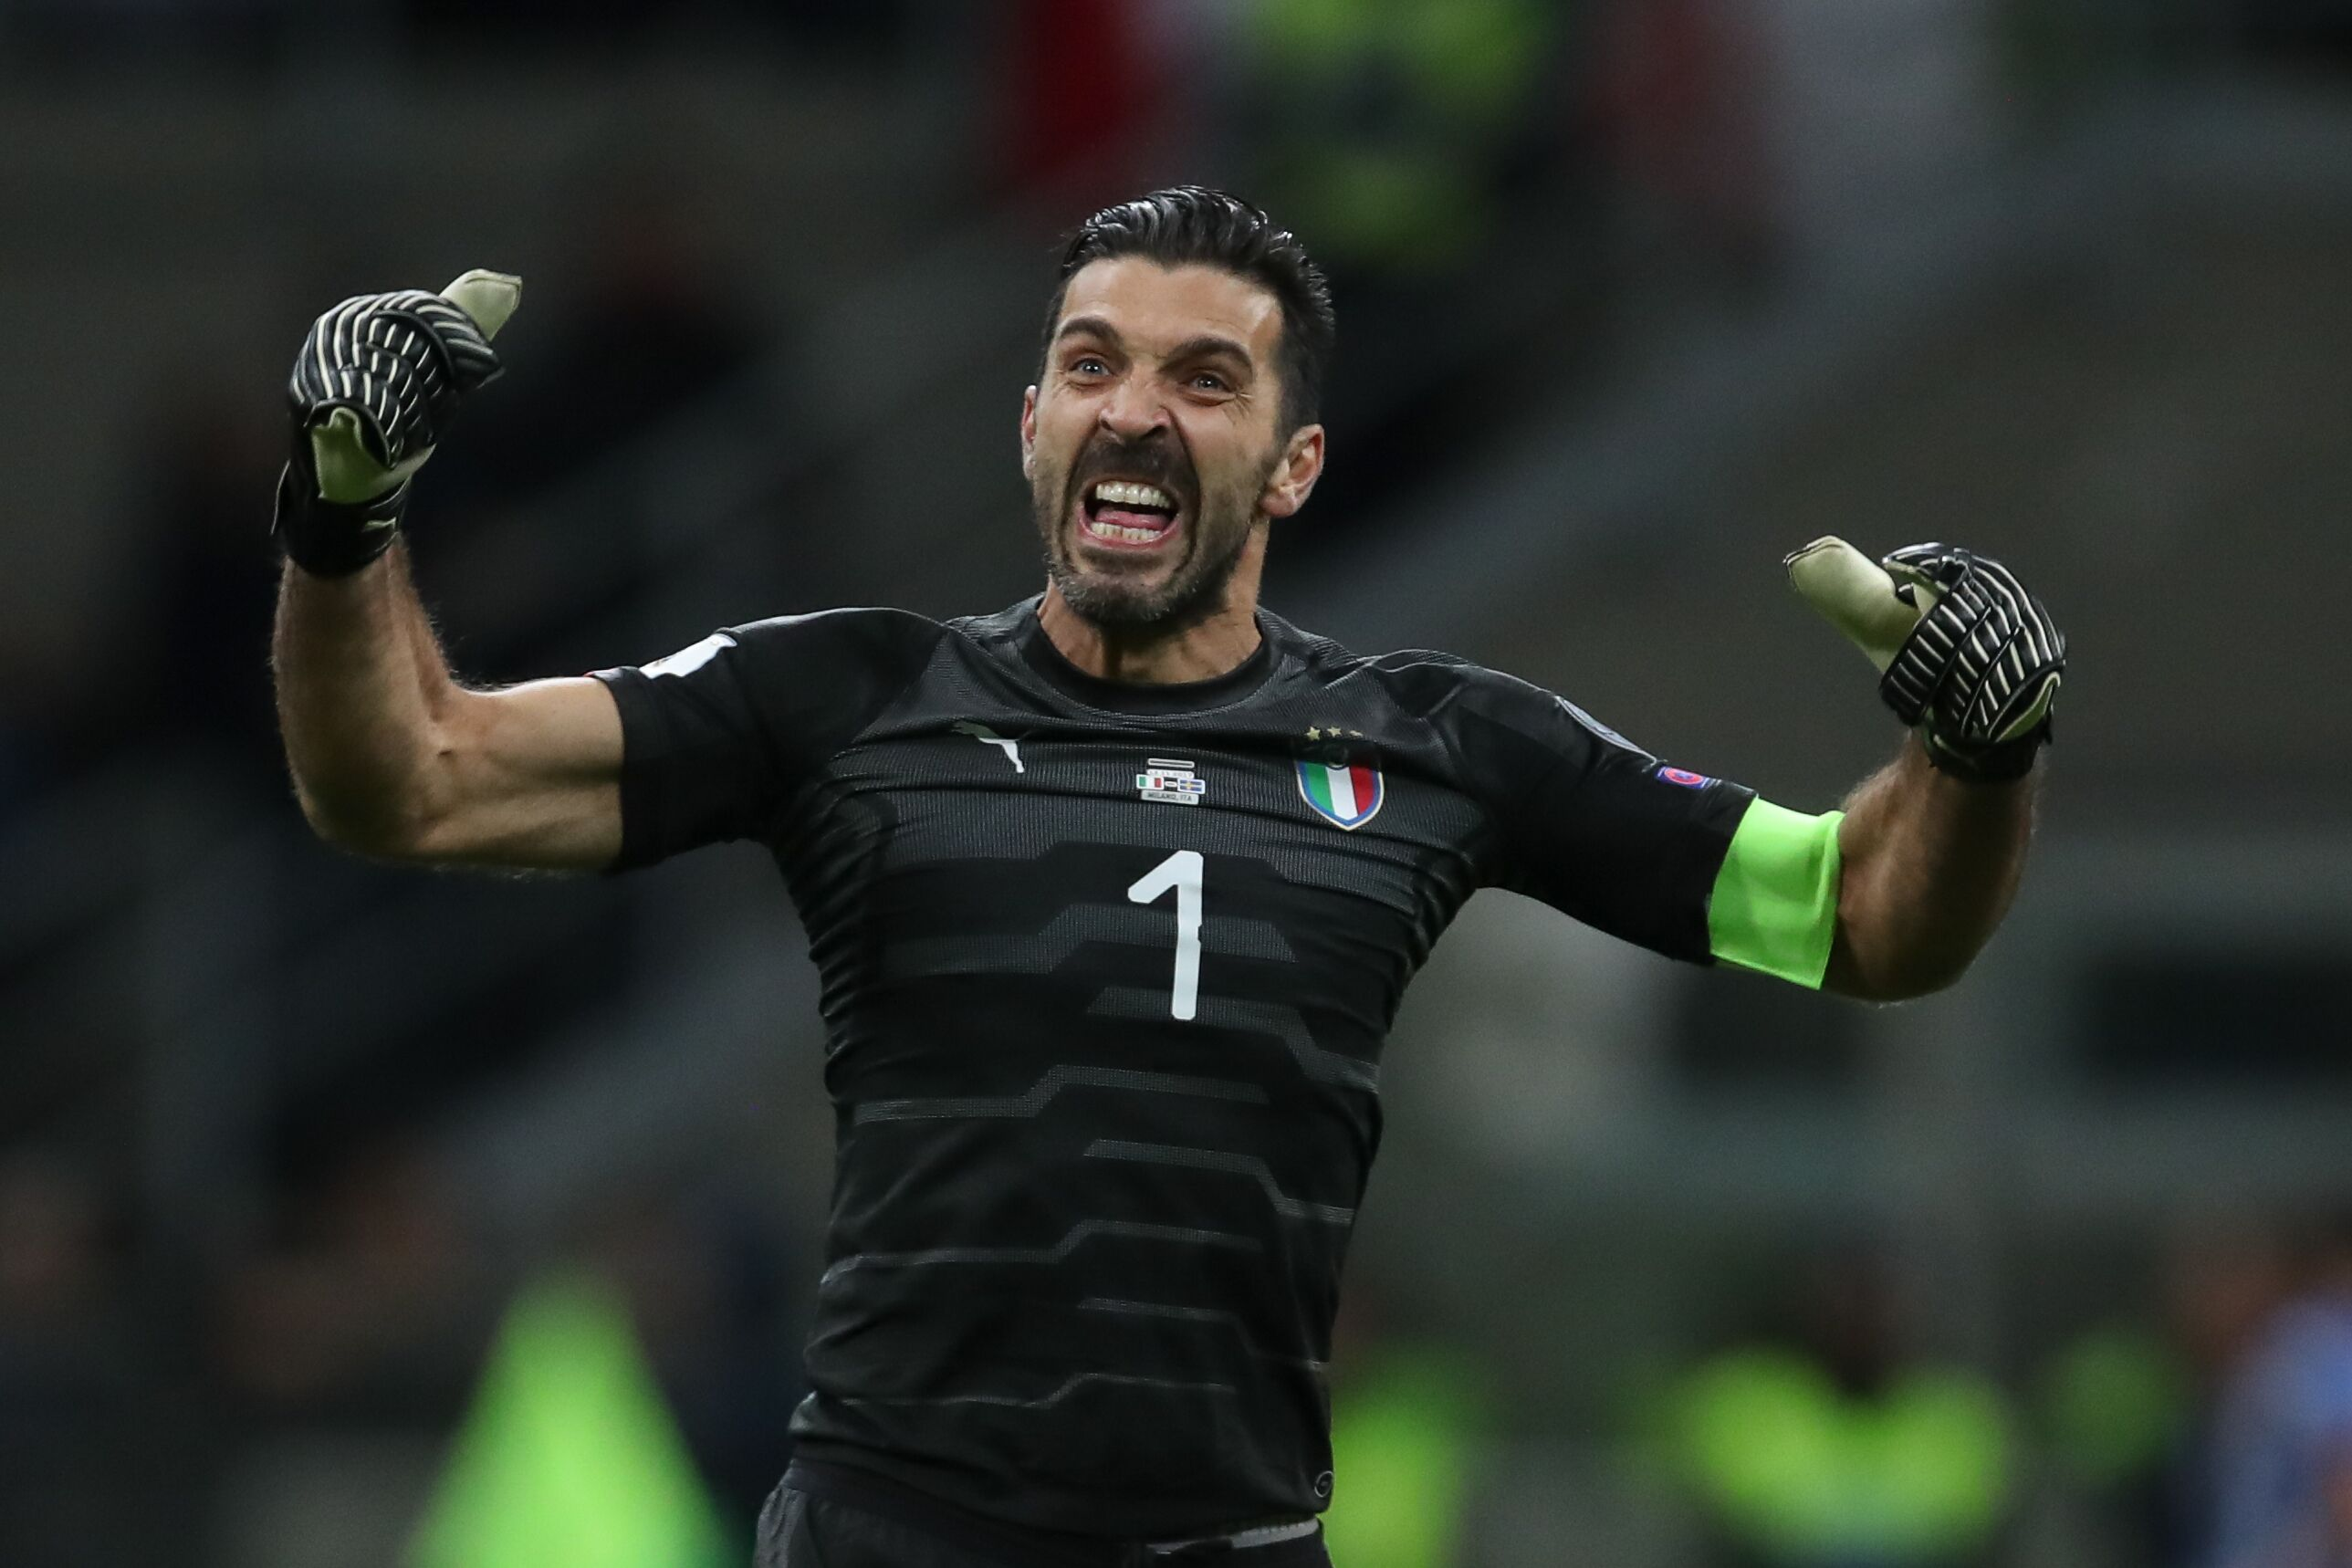 From pulisic to buffon the best xi who failed to qualify for Best world photos